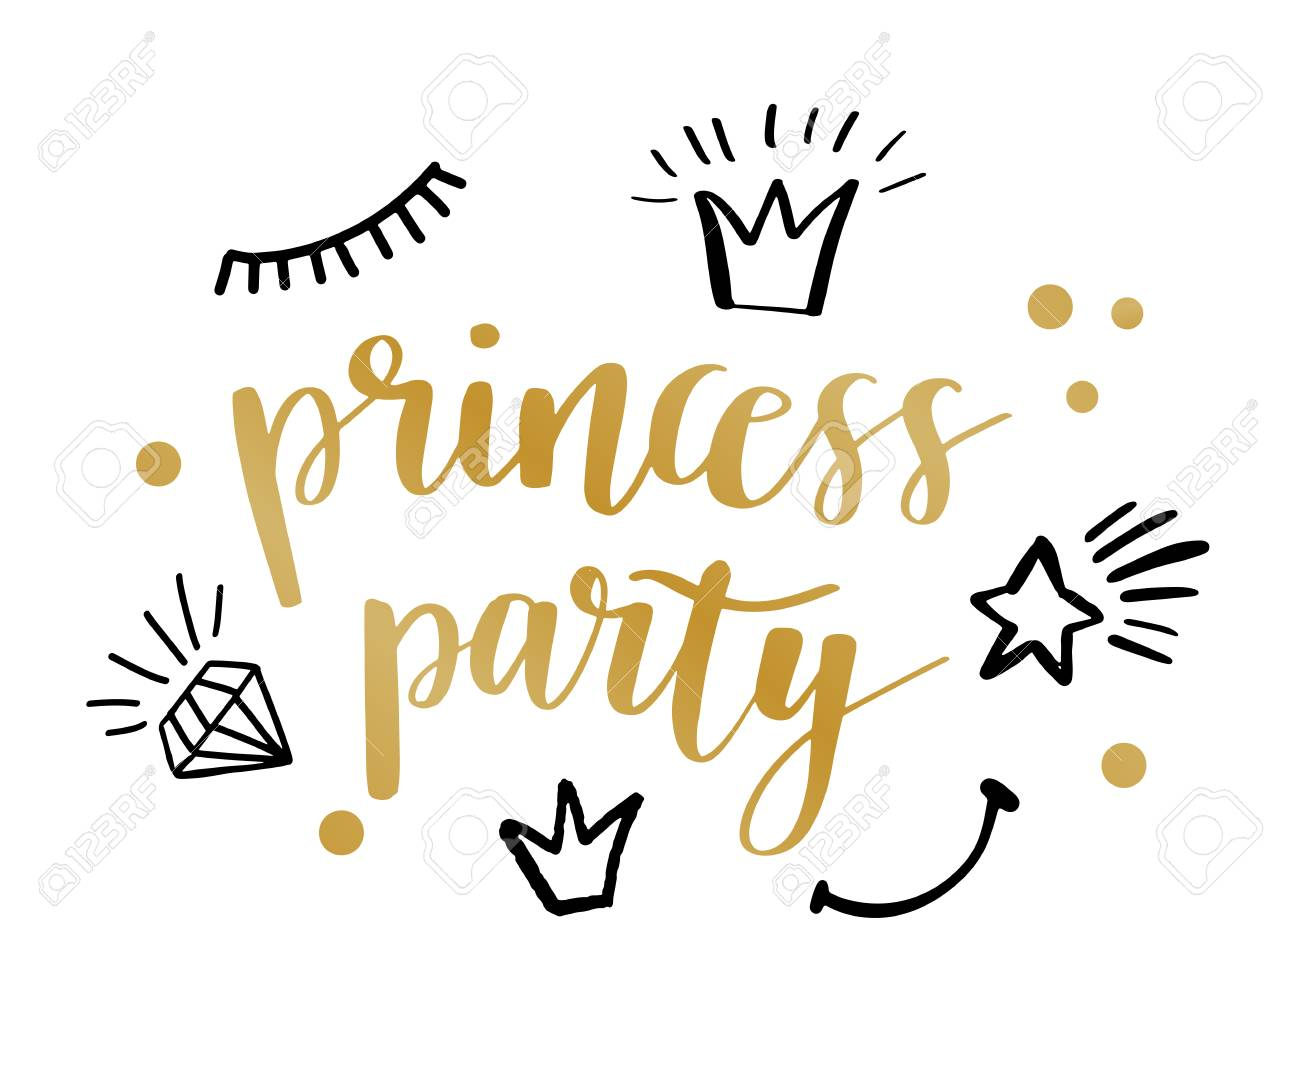 Princess Party Bridal Shower Birthday Invitation Card Design With Black Lettering Quote Typography Stock Vector